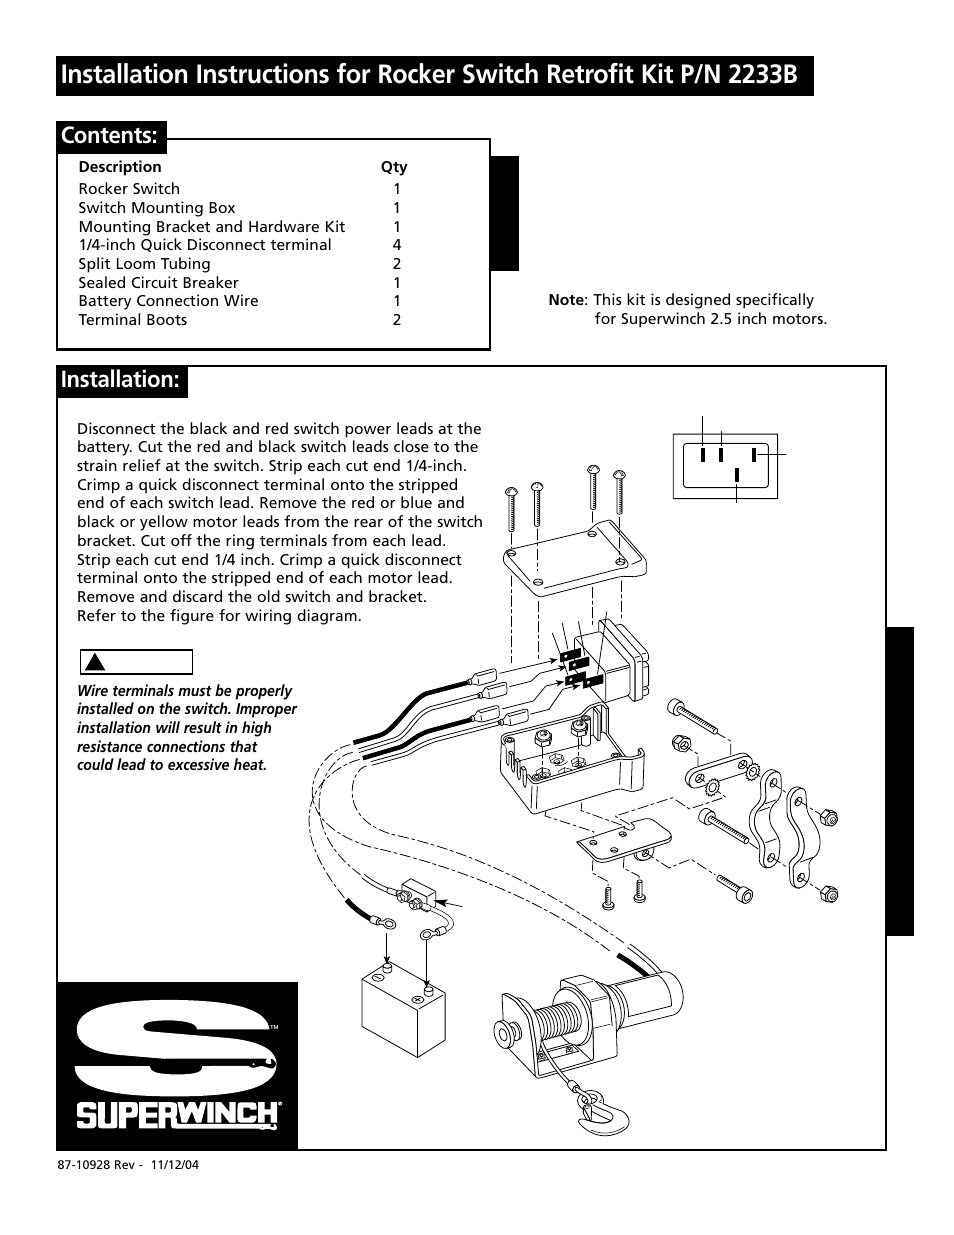 Superwinch T1500 Wiring Diagram Trusted Diagrams 9000 Find U2022 1500